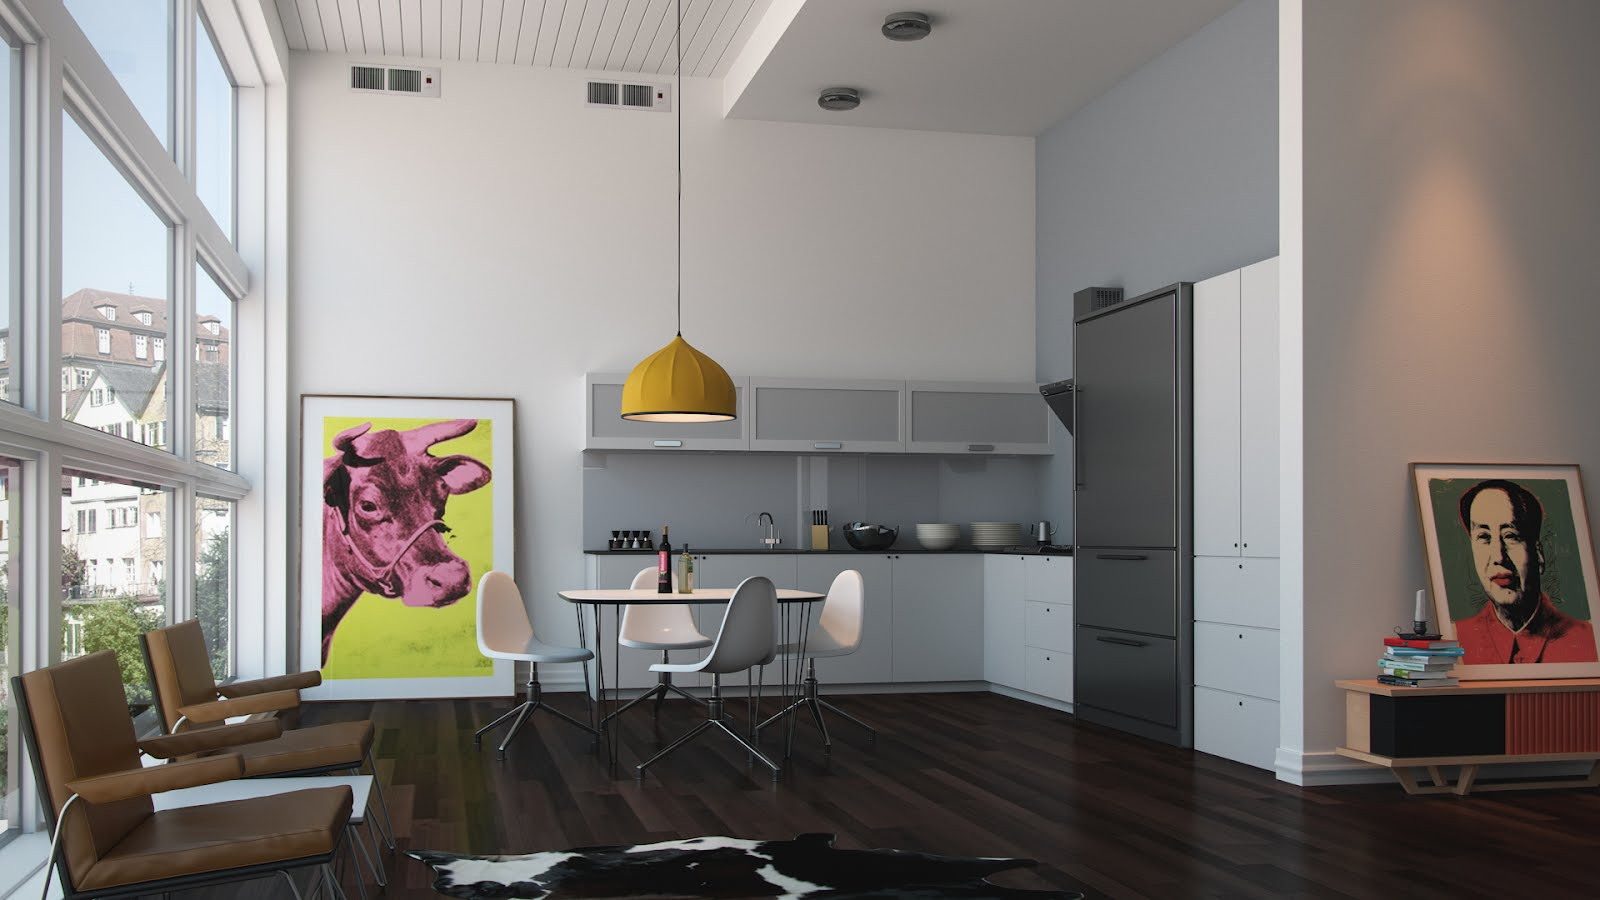 HDRI Interior Lighting Setup From Scratch with Vray & 3ds